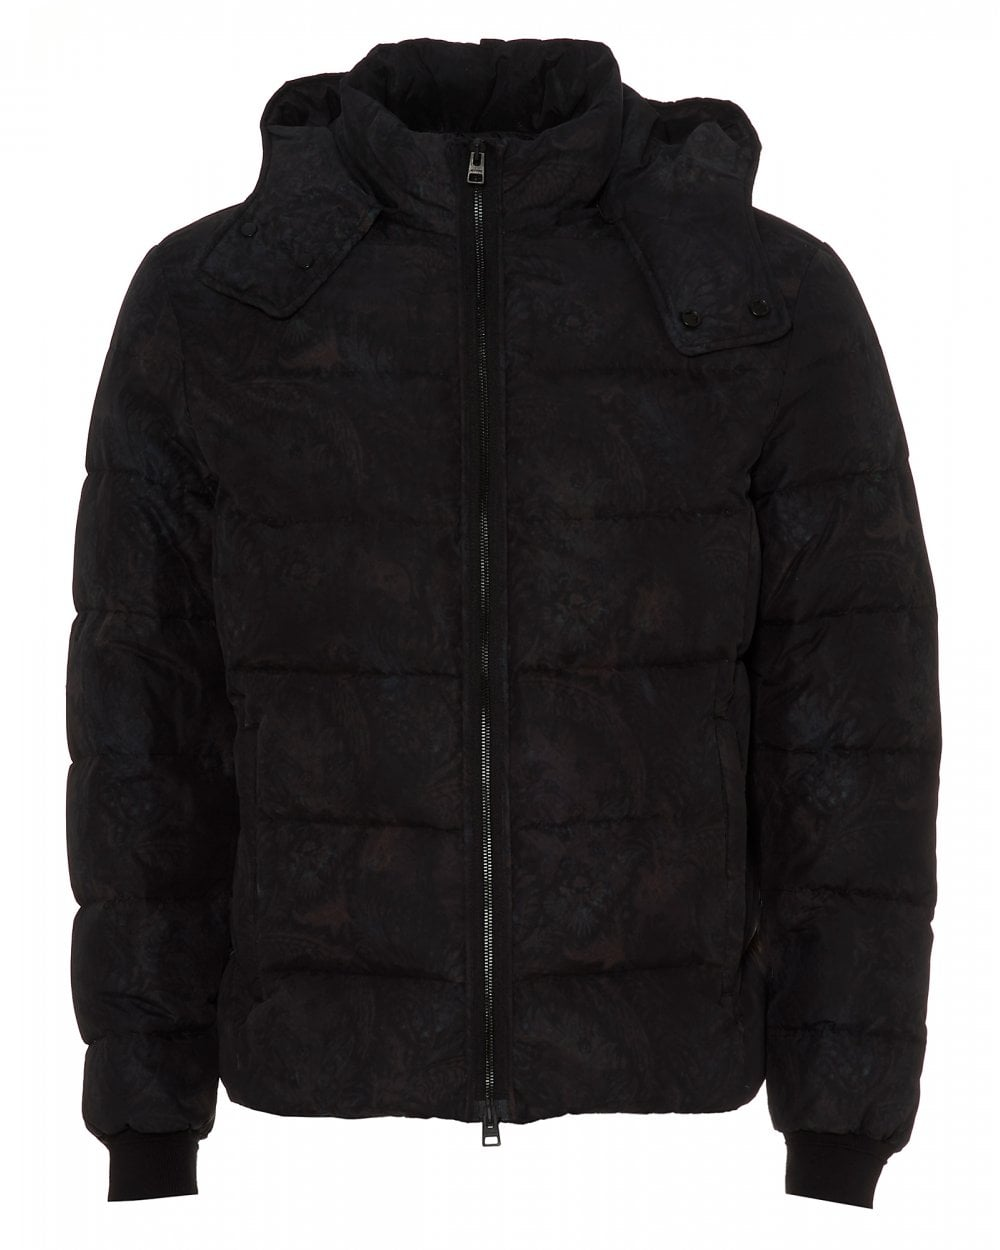 25ec78fc Mens Quilted Floral Puffa, Black Hooded Puffer Jacket